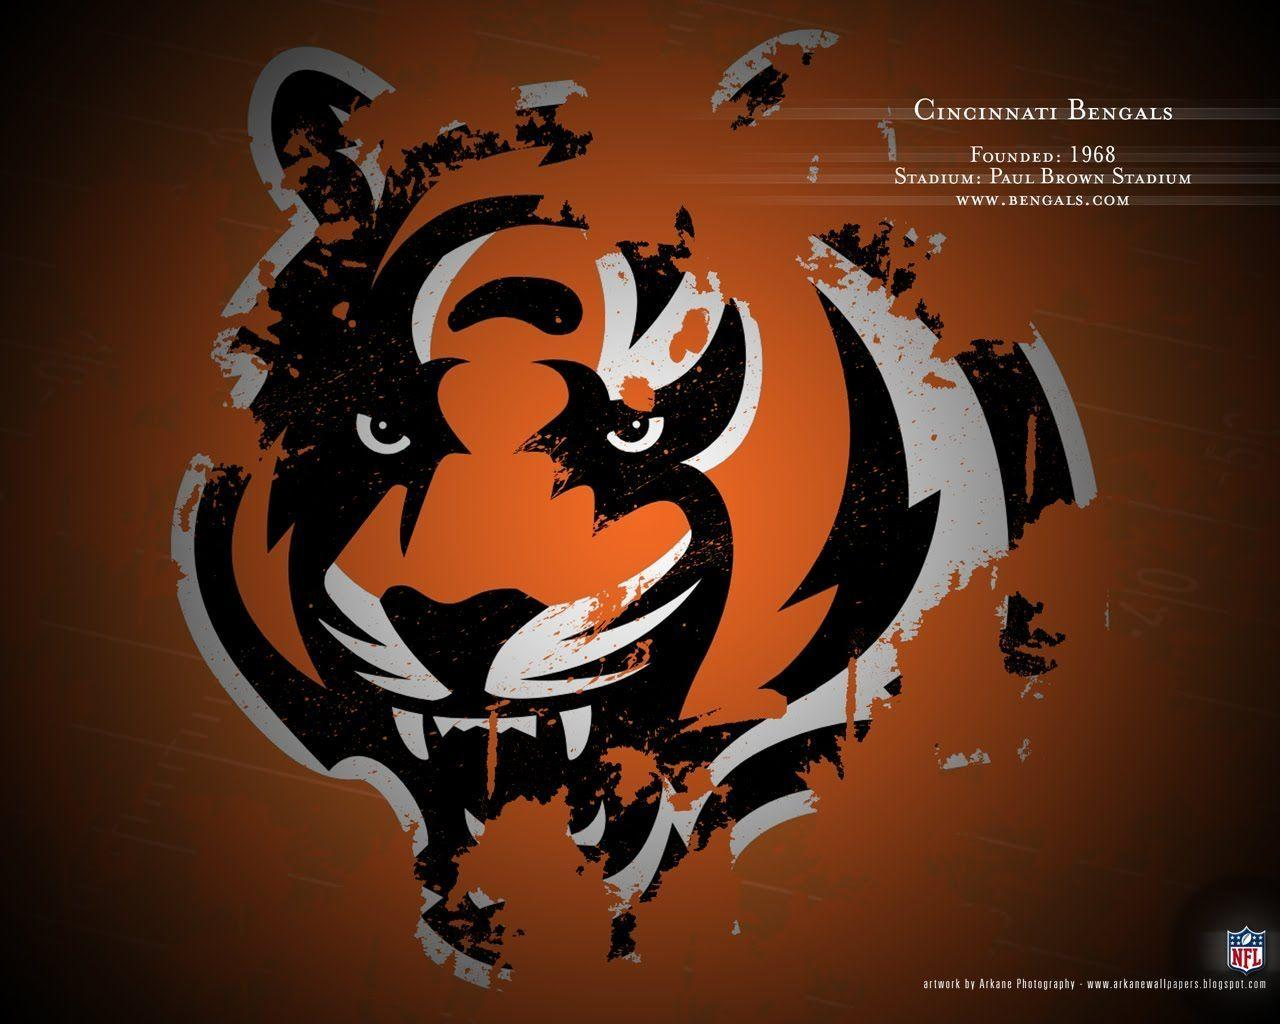 Cincinnati Bengals Logo 2013 | Free HD Wallpaper 2013 Desktop ...